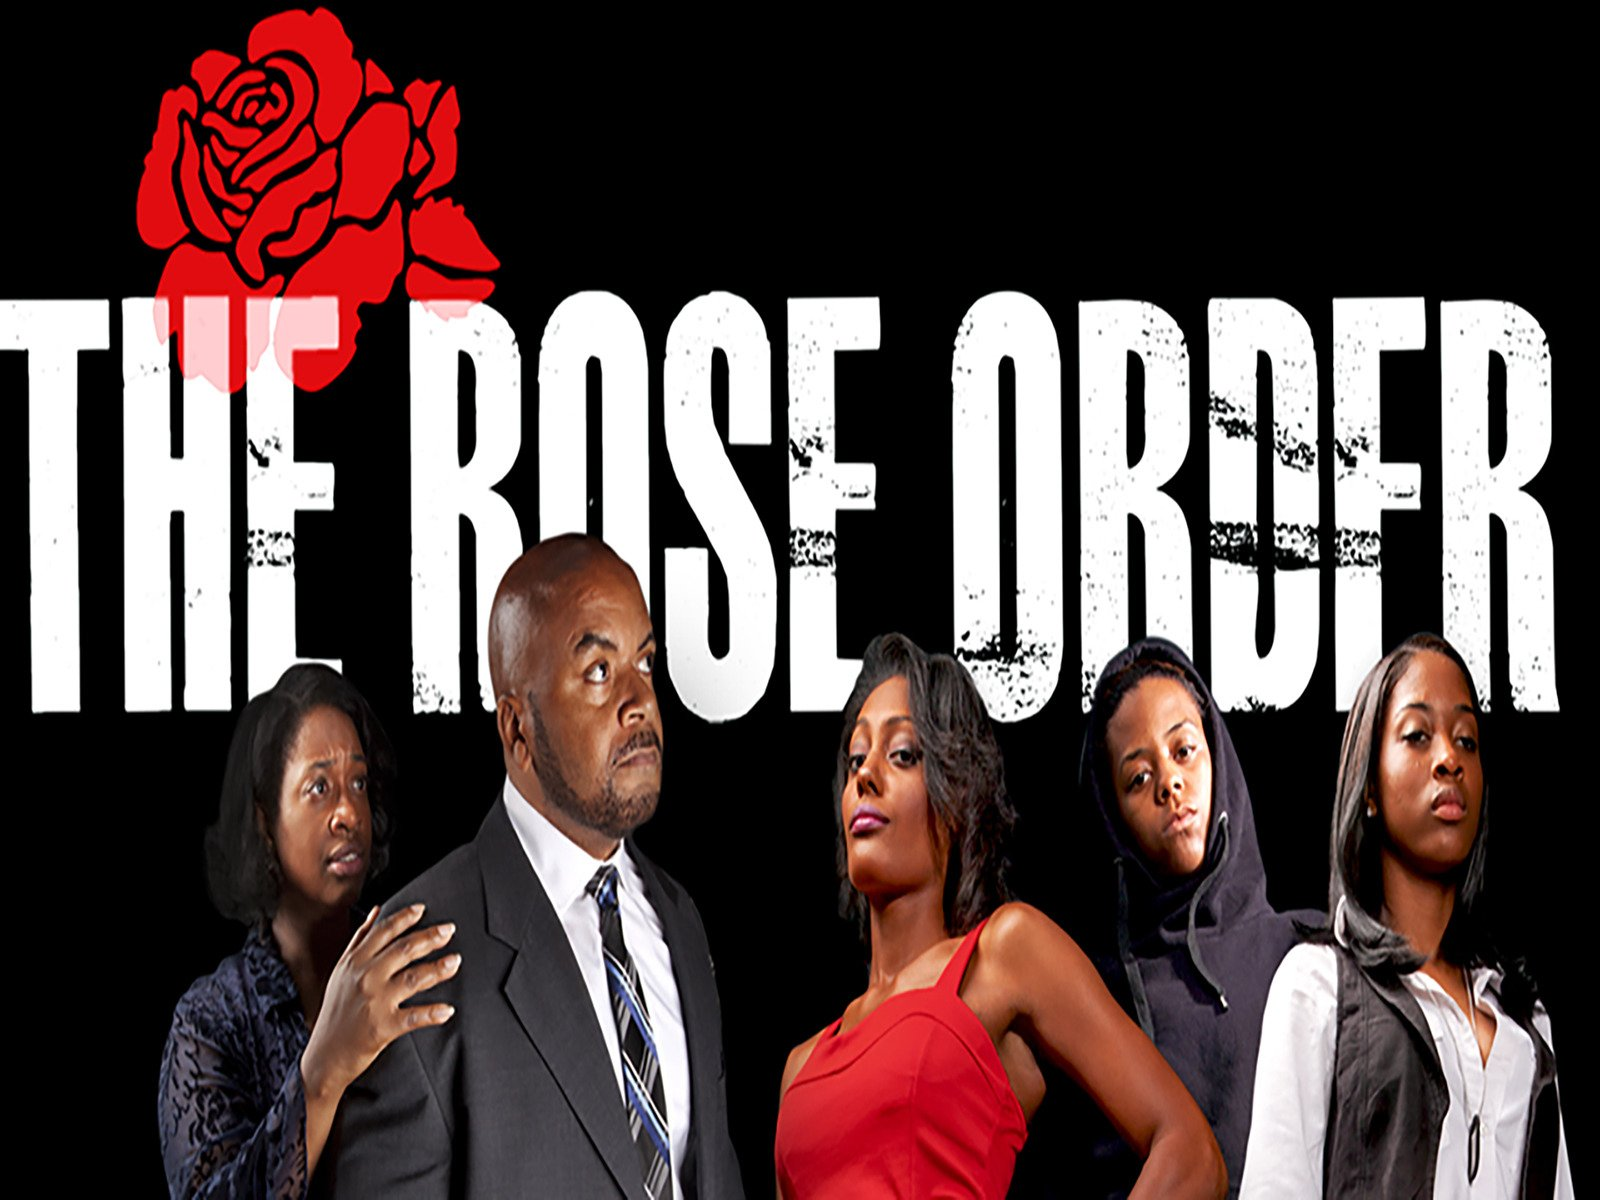 The Rose Order